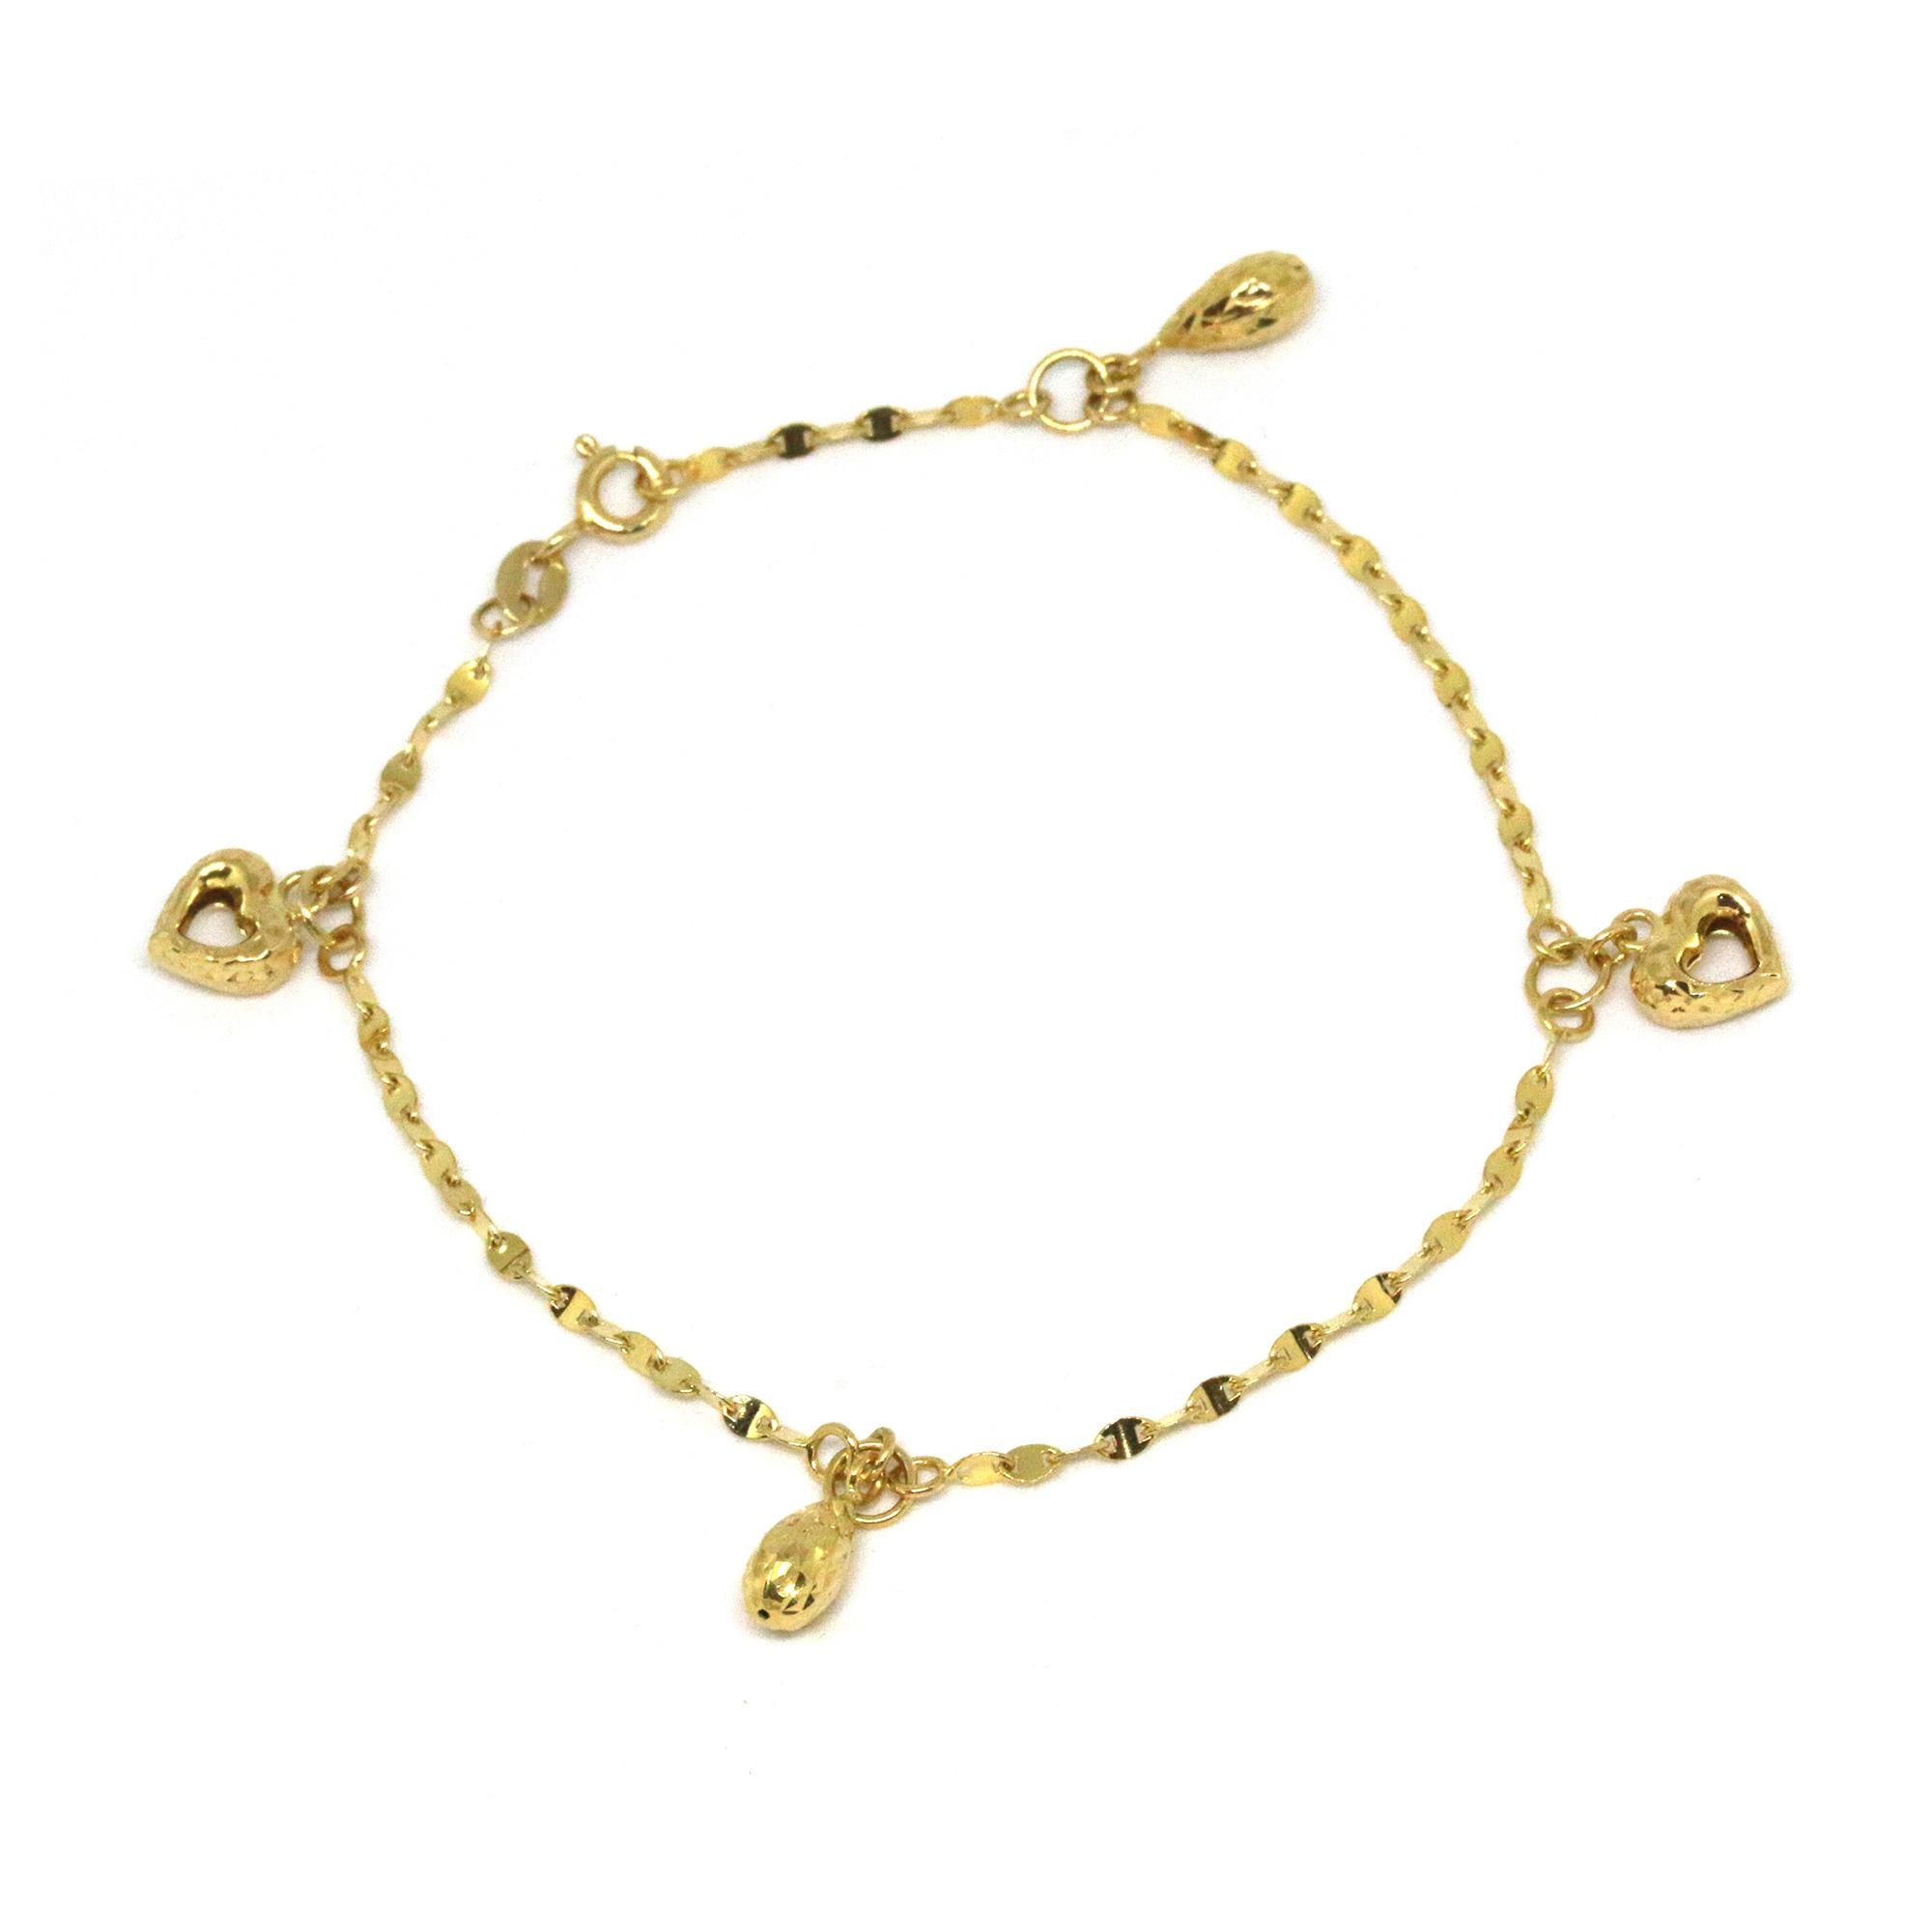 wonderfuletta anklet mit bracelet armkette shell muschel vergoldeter gold products